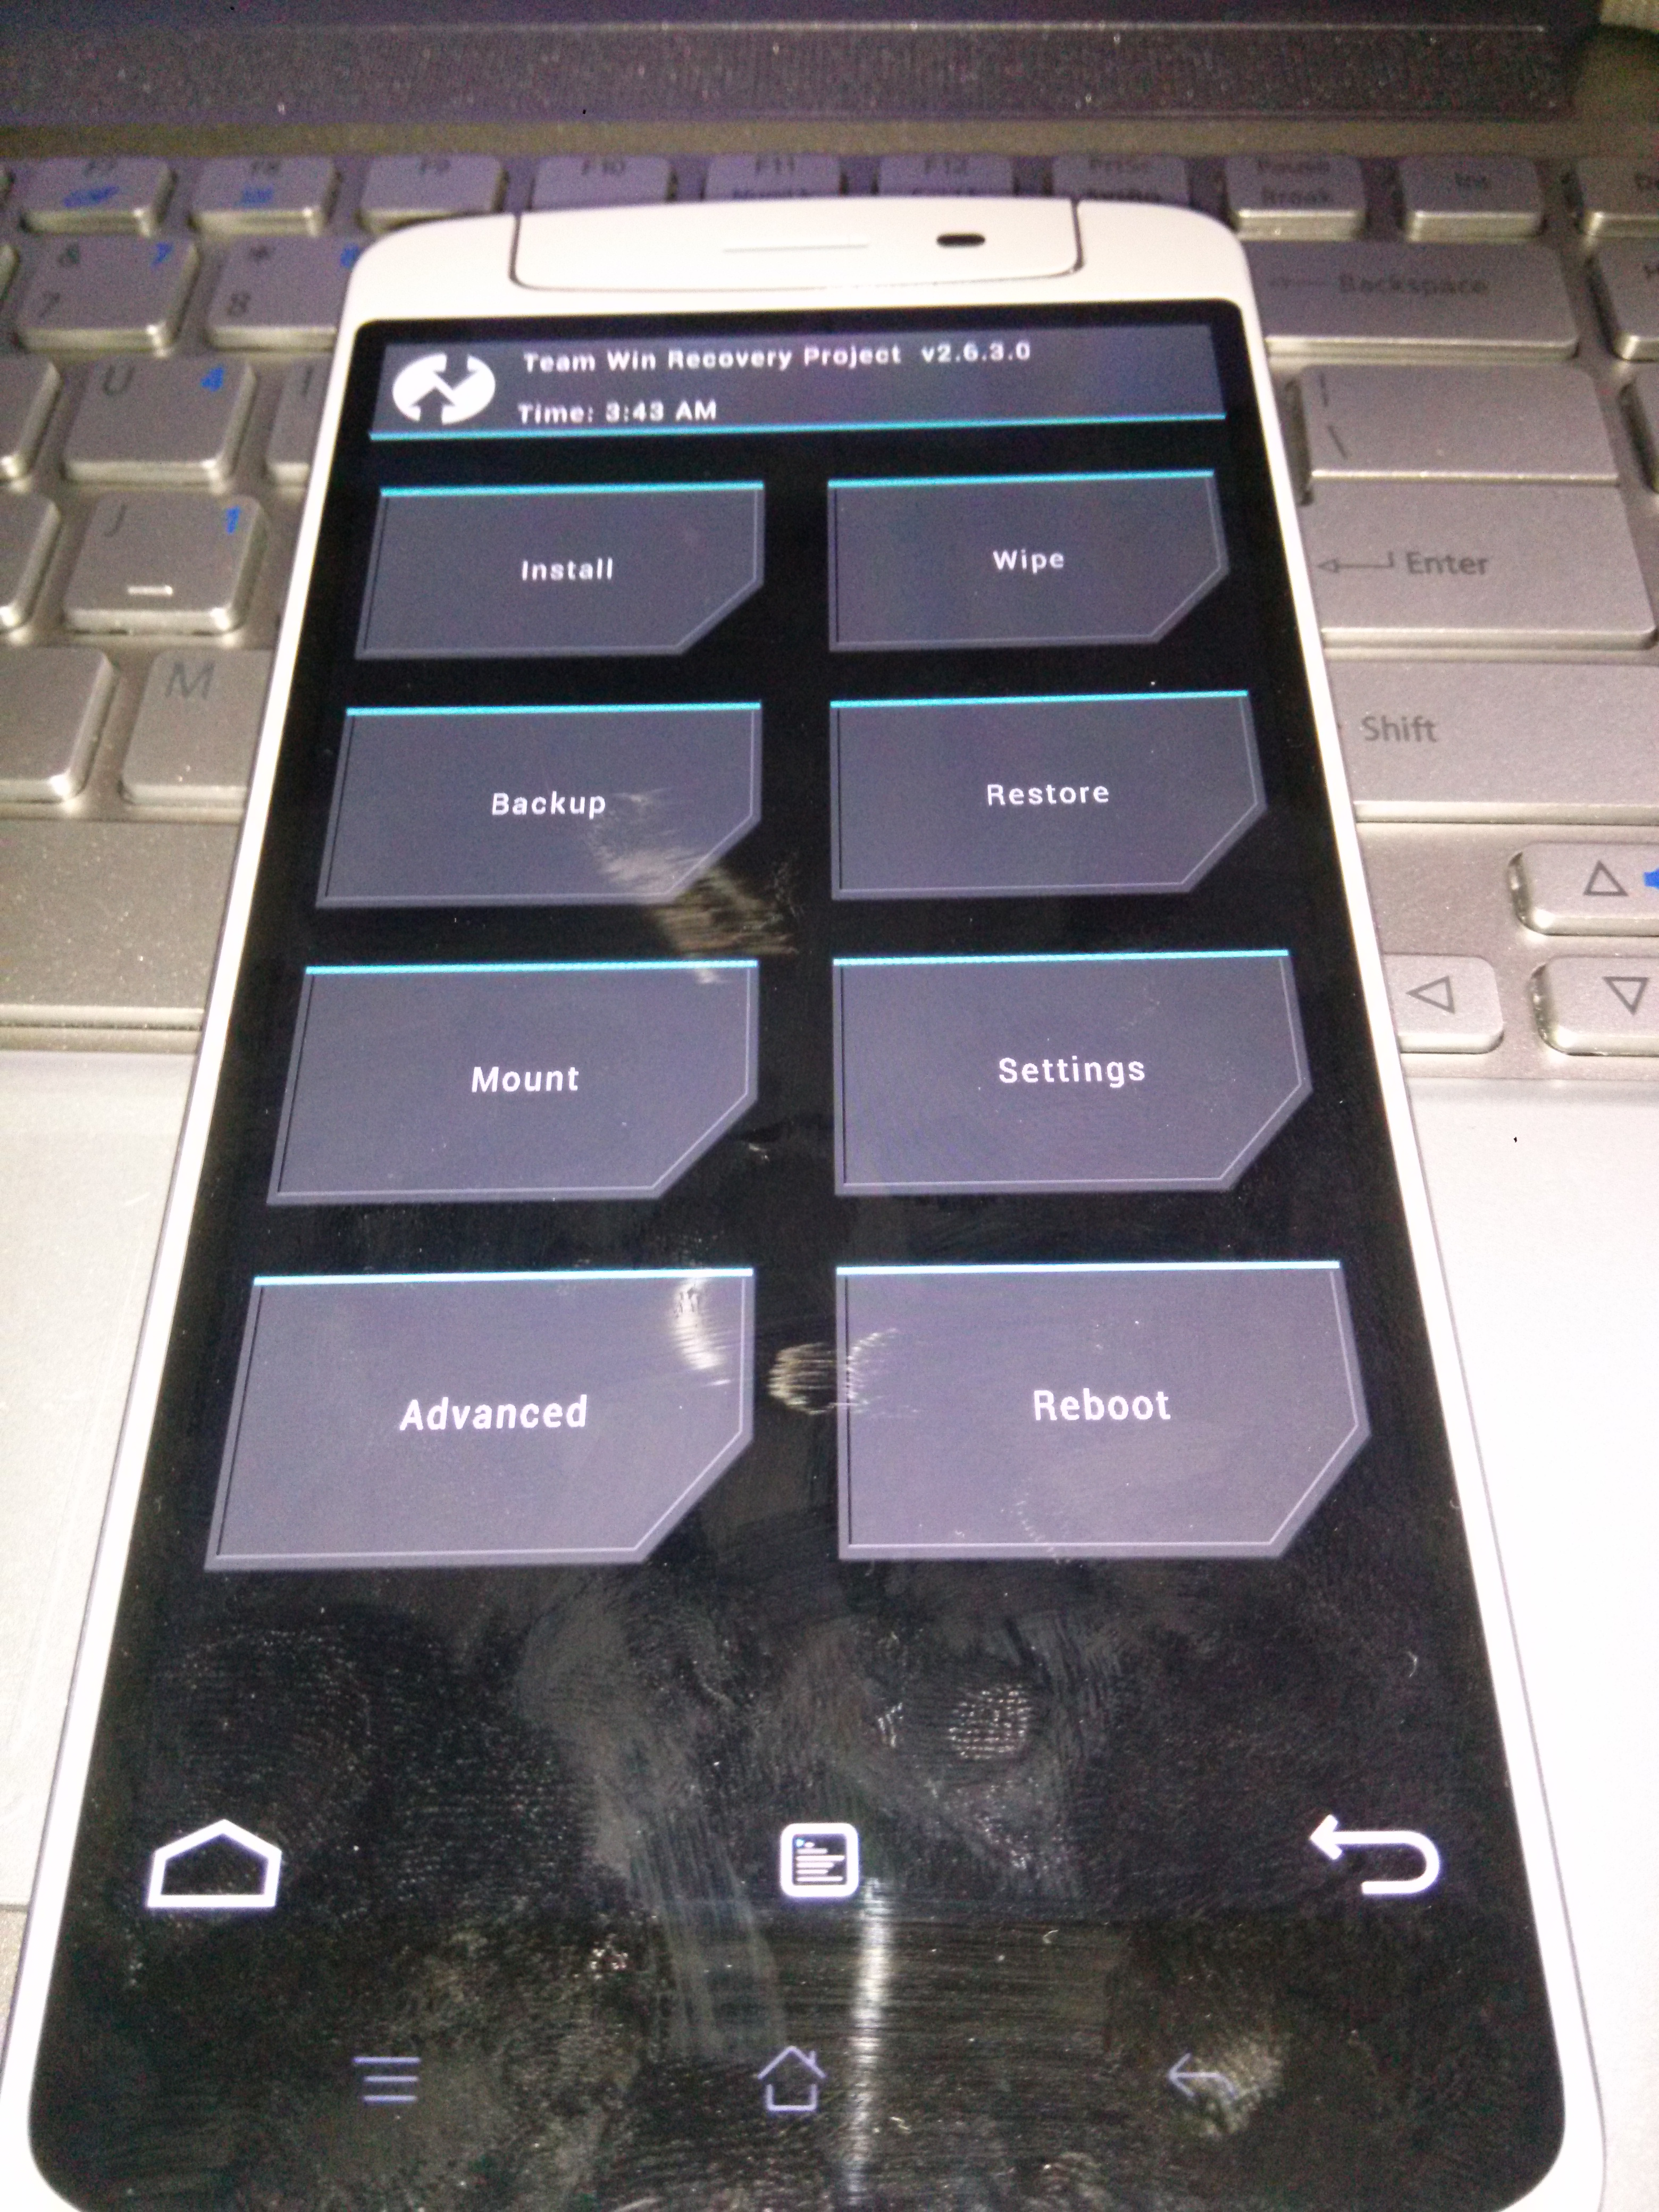 OPPO N1 TWRP Recovery